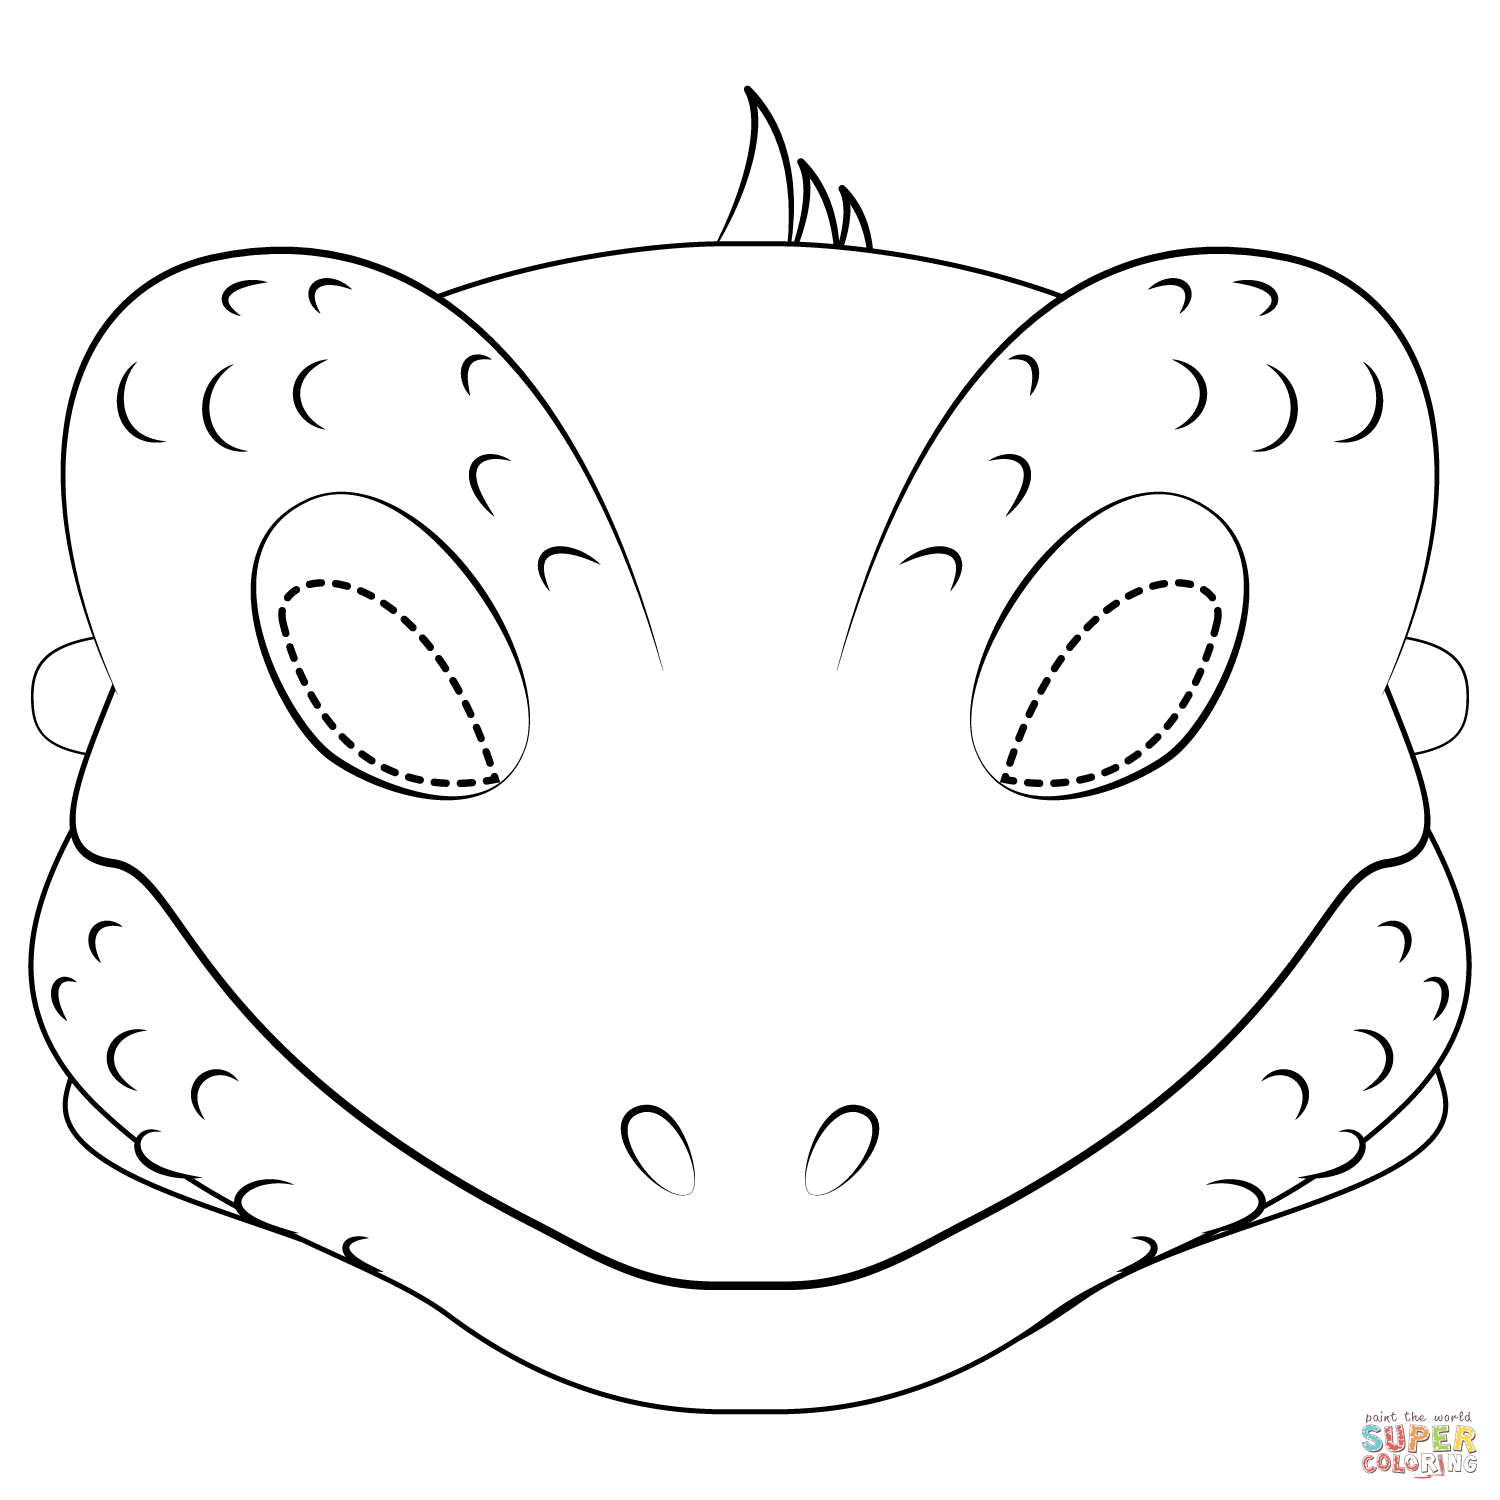 Lizard Mask Coloring Page | Free Printable Coloring Pages - Free Printable Lizard Mask